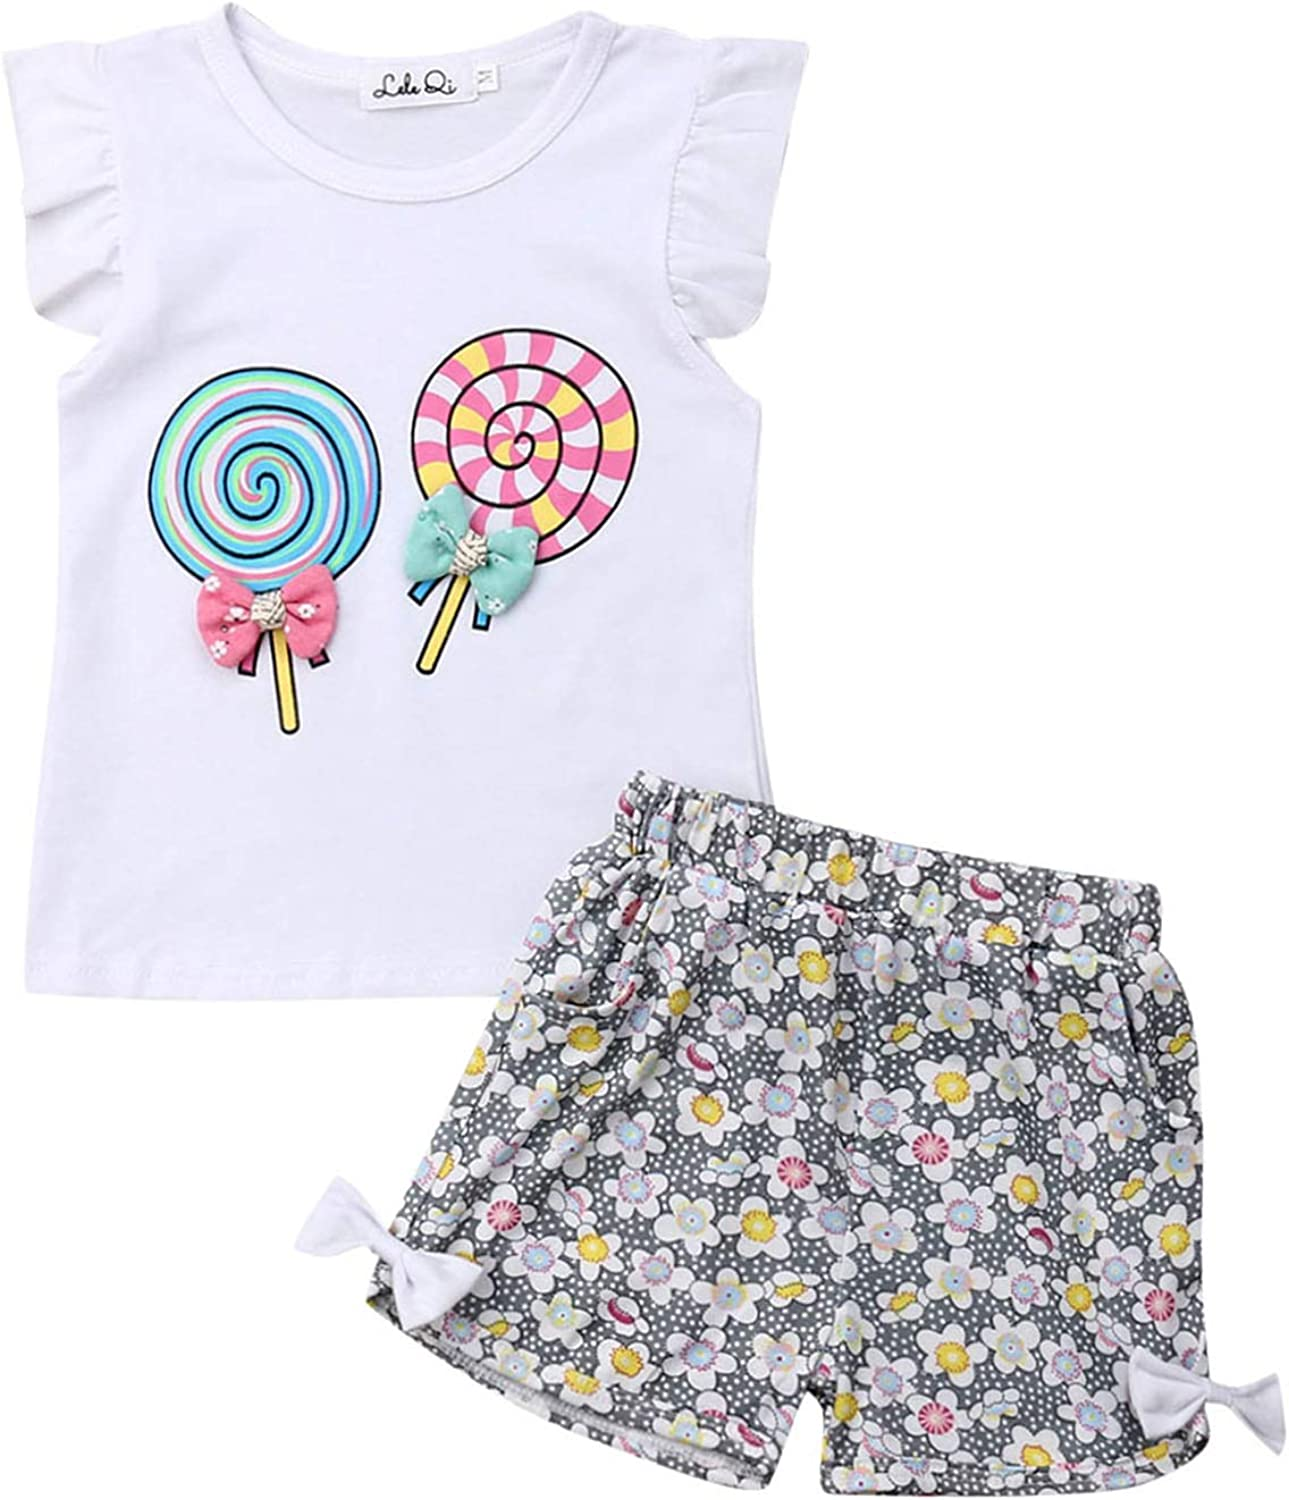 Toddler Baby Girl Summer Clothes Ruffle Sleeve T-Shirt Vest Tops+Floral Shorts Pants Outfit